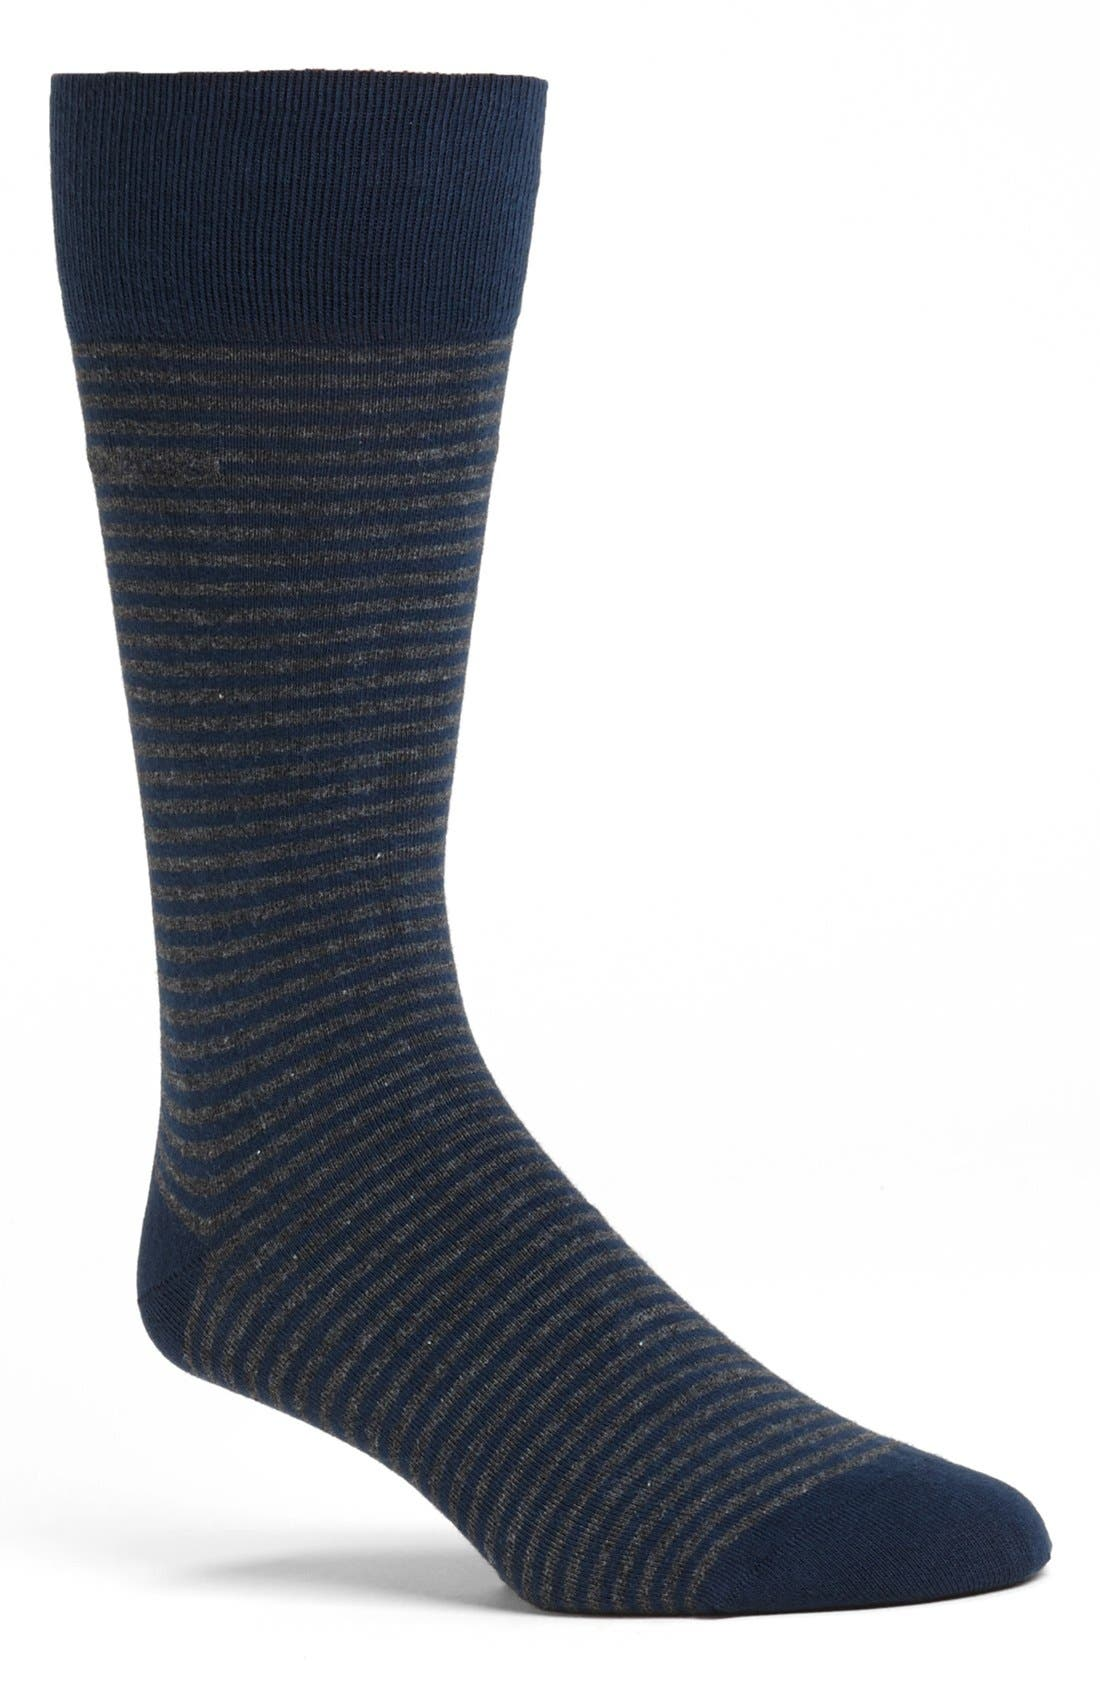 Alternate Image 1 Selected - BOSS HUGO BOSS 'Marc' Socks